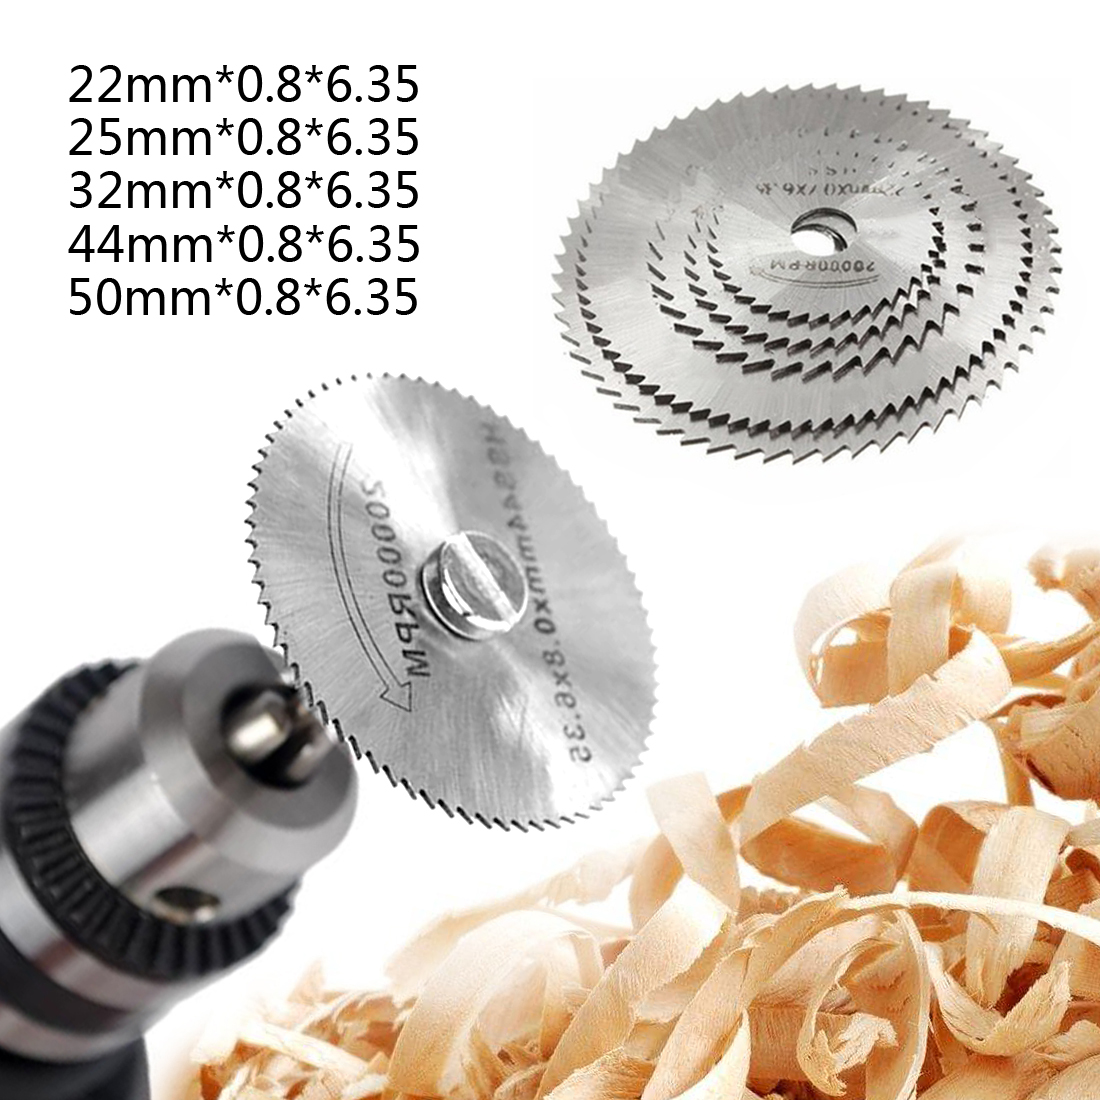 22-50mm Mini HSS Circular Saw Blade Jig Saw Rotary Tool For Dremel Metal Cutter Power Tool Set Wood Cutting Discs Drill Mandrel 6pcs mini hss saw circular saw blade rotary tools for dremel metal cutter jigsaw blade wood cutting discs drive for cutting wood